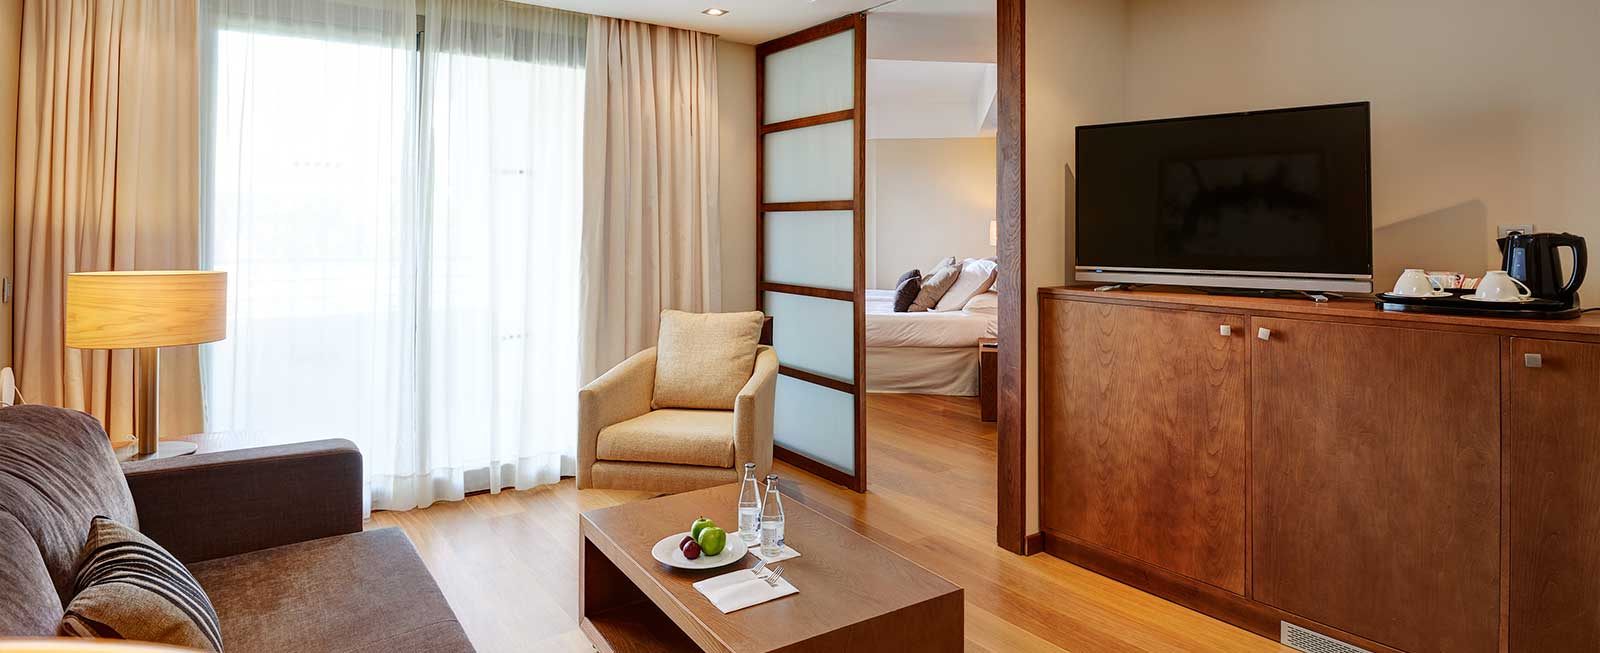 Junior Suite Protur Biomar Gran Hotel & Spa